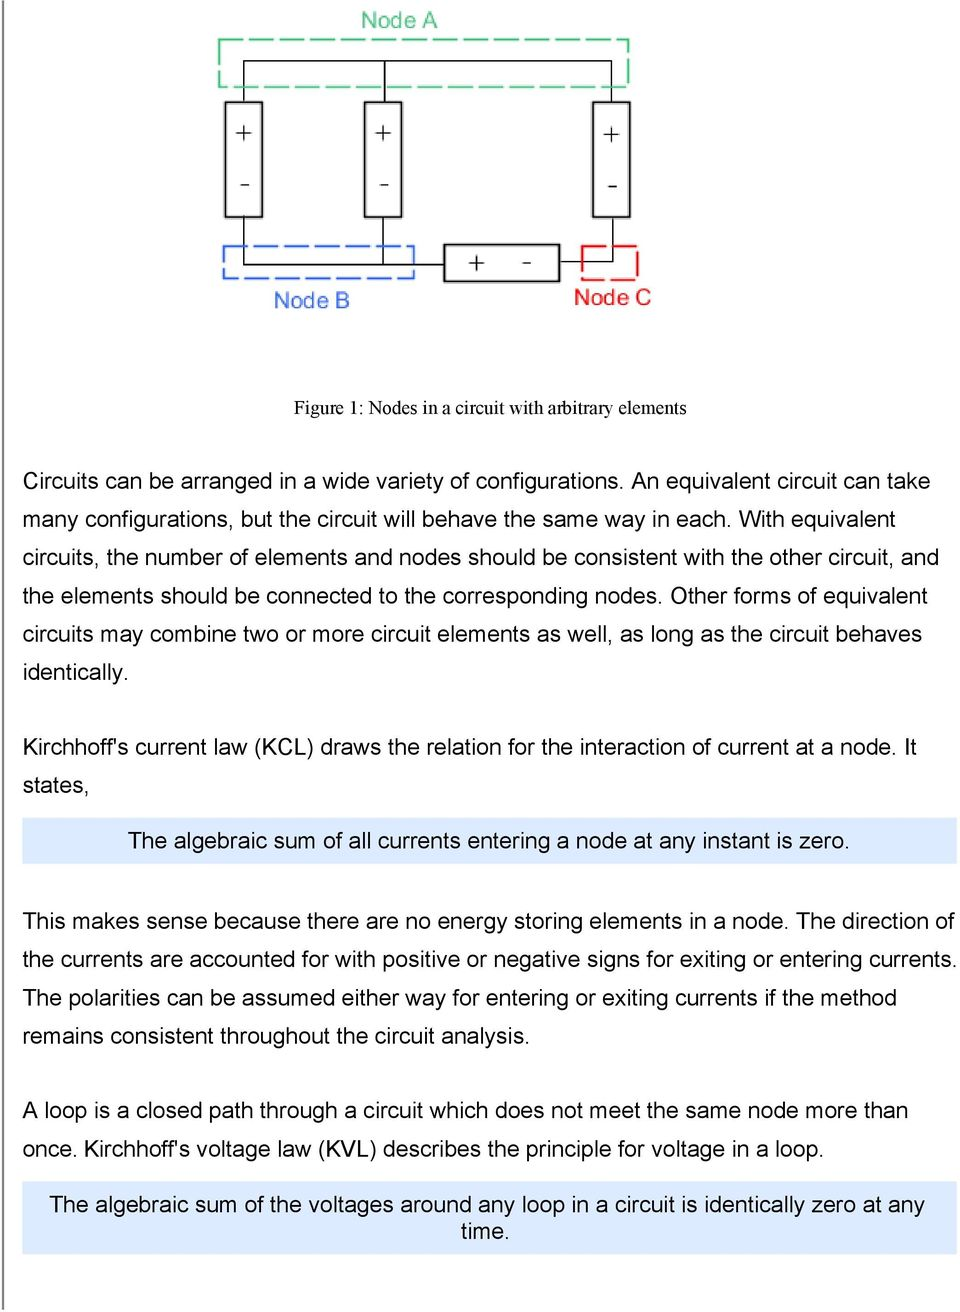 With equivalent circuits, the number of elements and nodes should be consistent with the other circuit, and the elements should be connected to the corresponding nodes.